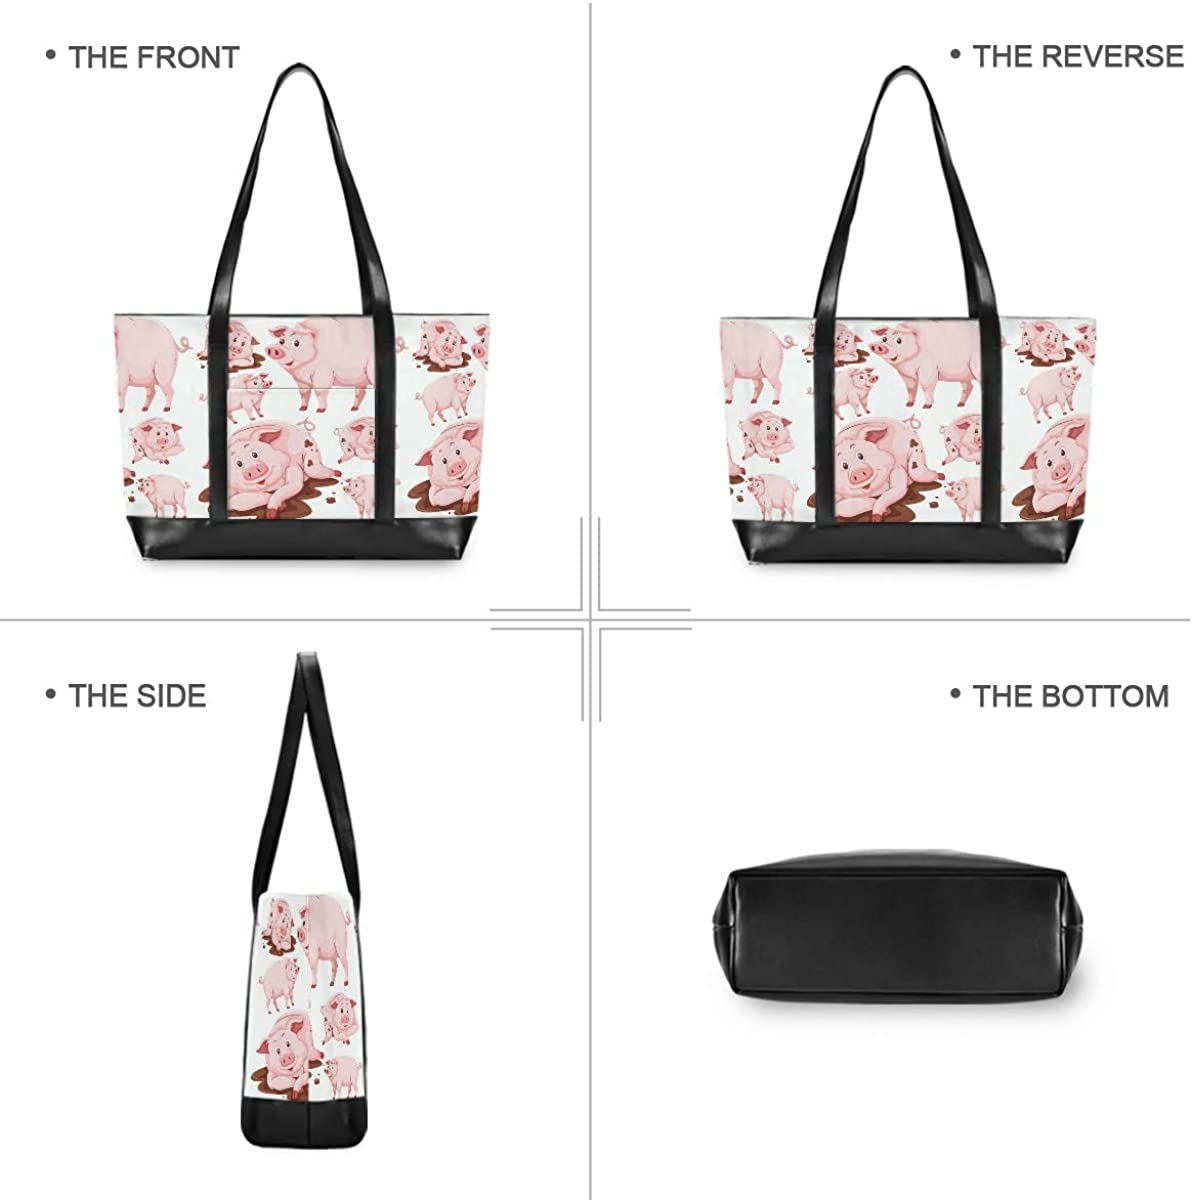 Leather Business Work Office Briefcase for Computer Cute Pig Cartoon 15.6 Inch Laptop Tote Bag For Womens Large Tote Bag Lightweight Shoulder Bag Multi-Pocket Canvas